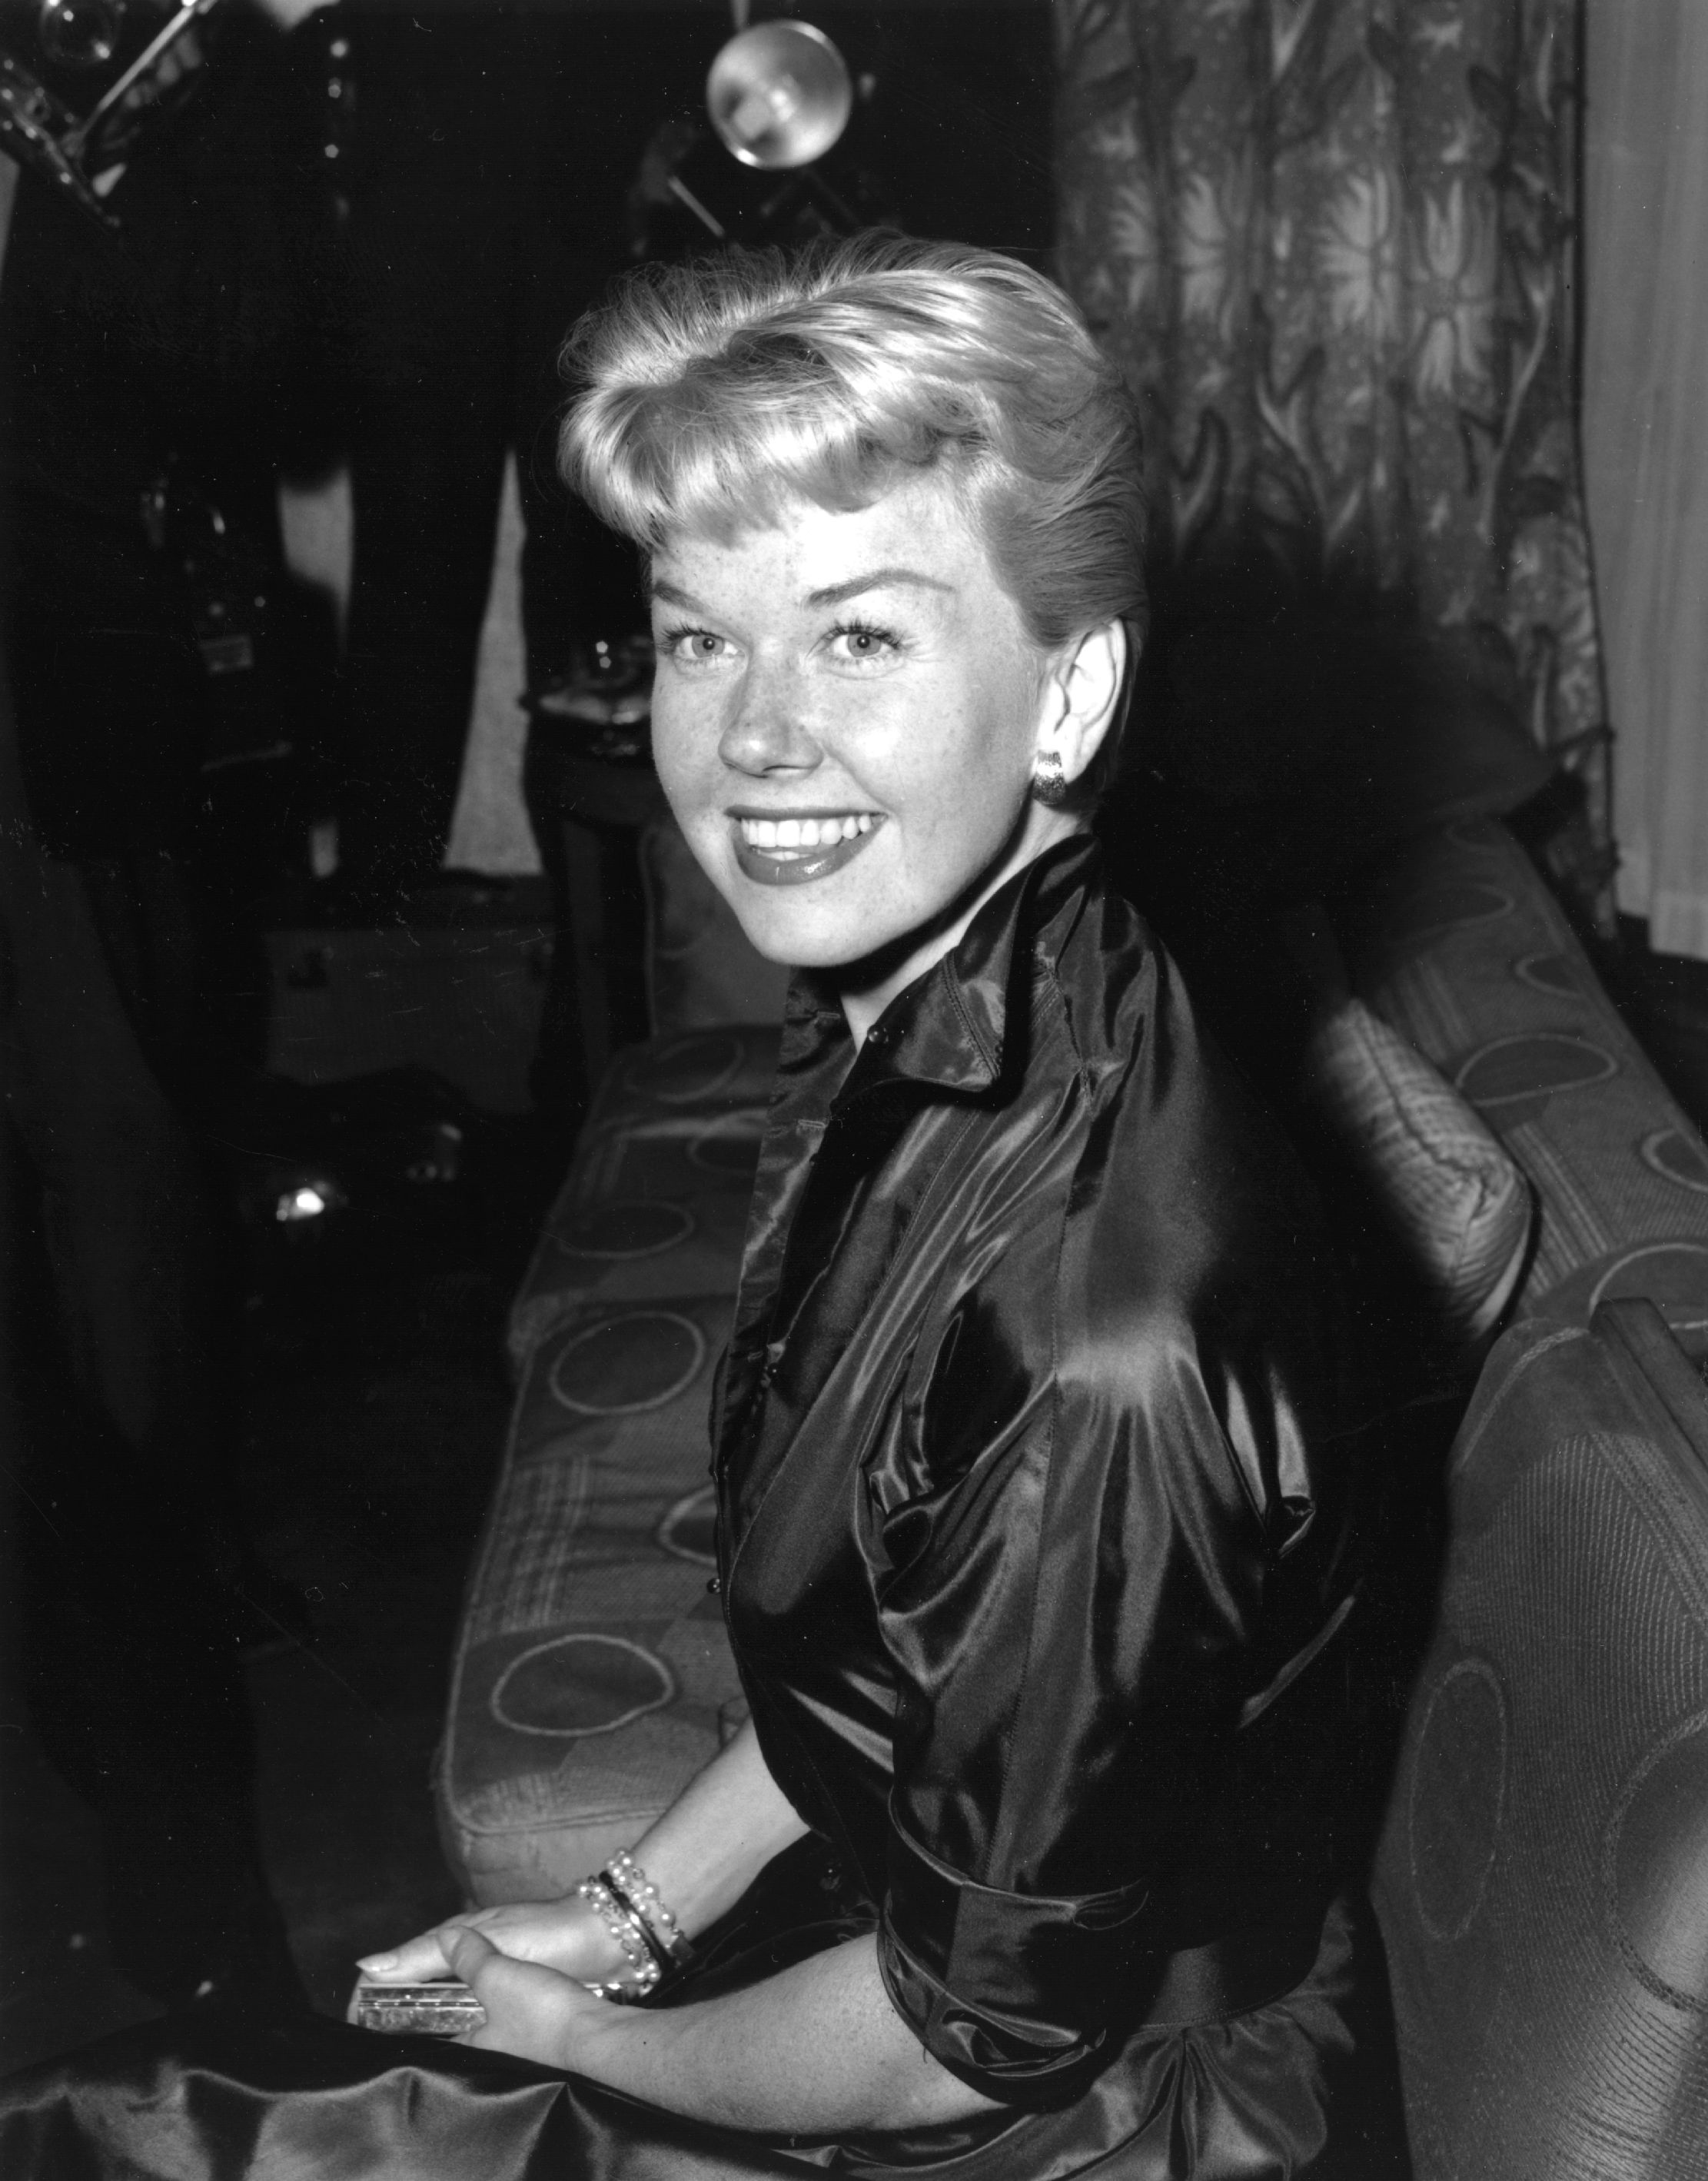 Image Credits: Getty Images / Keystone | American singer-actress Doris Day (originally Doris Von Kappelhoff) attending a reception at Claridges Hotel in London, April 1955.